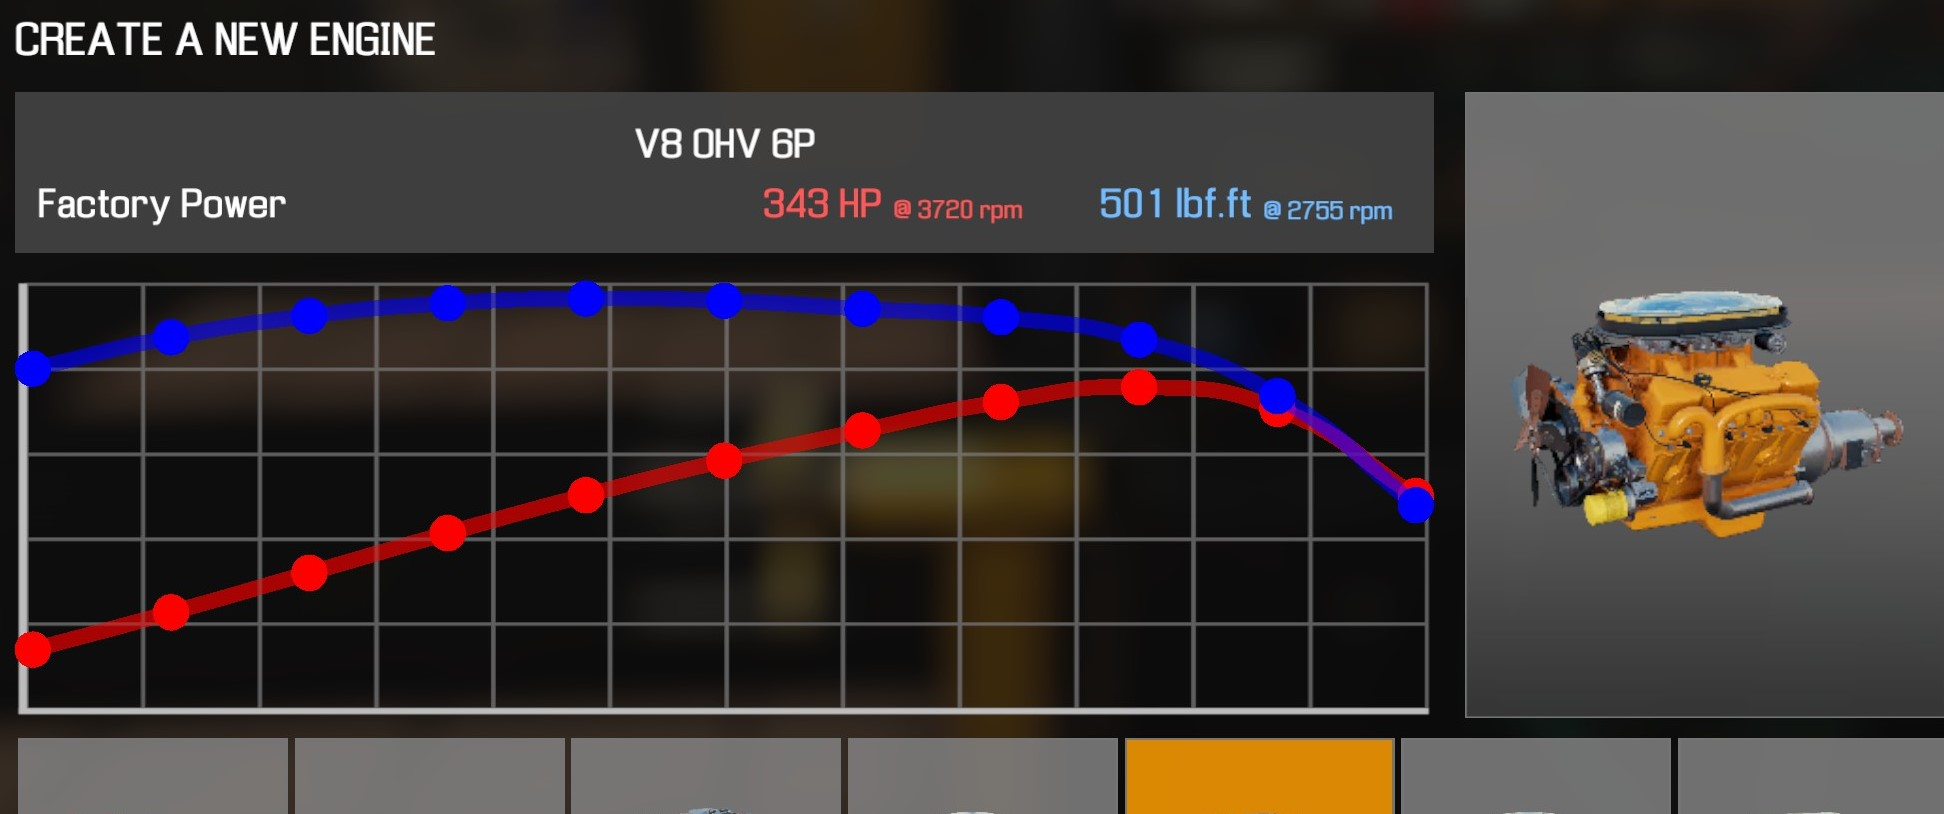 Car Mechanic Simulator 2021 - How to Buy Engine Parts and All Engines in Game Information - V8 OHV 6P - 20E10D3